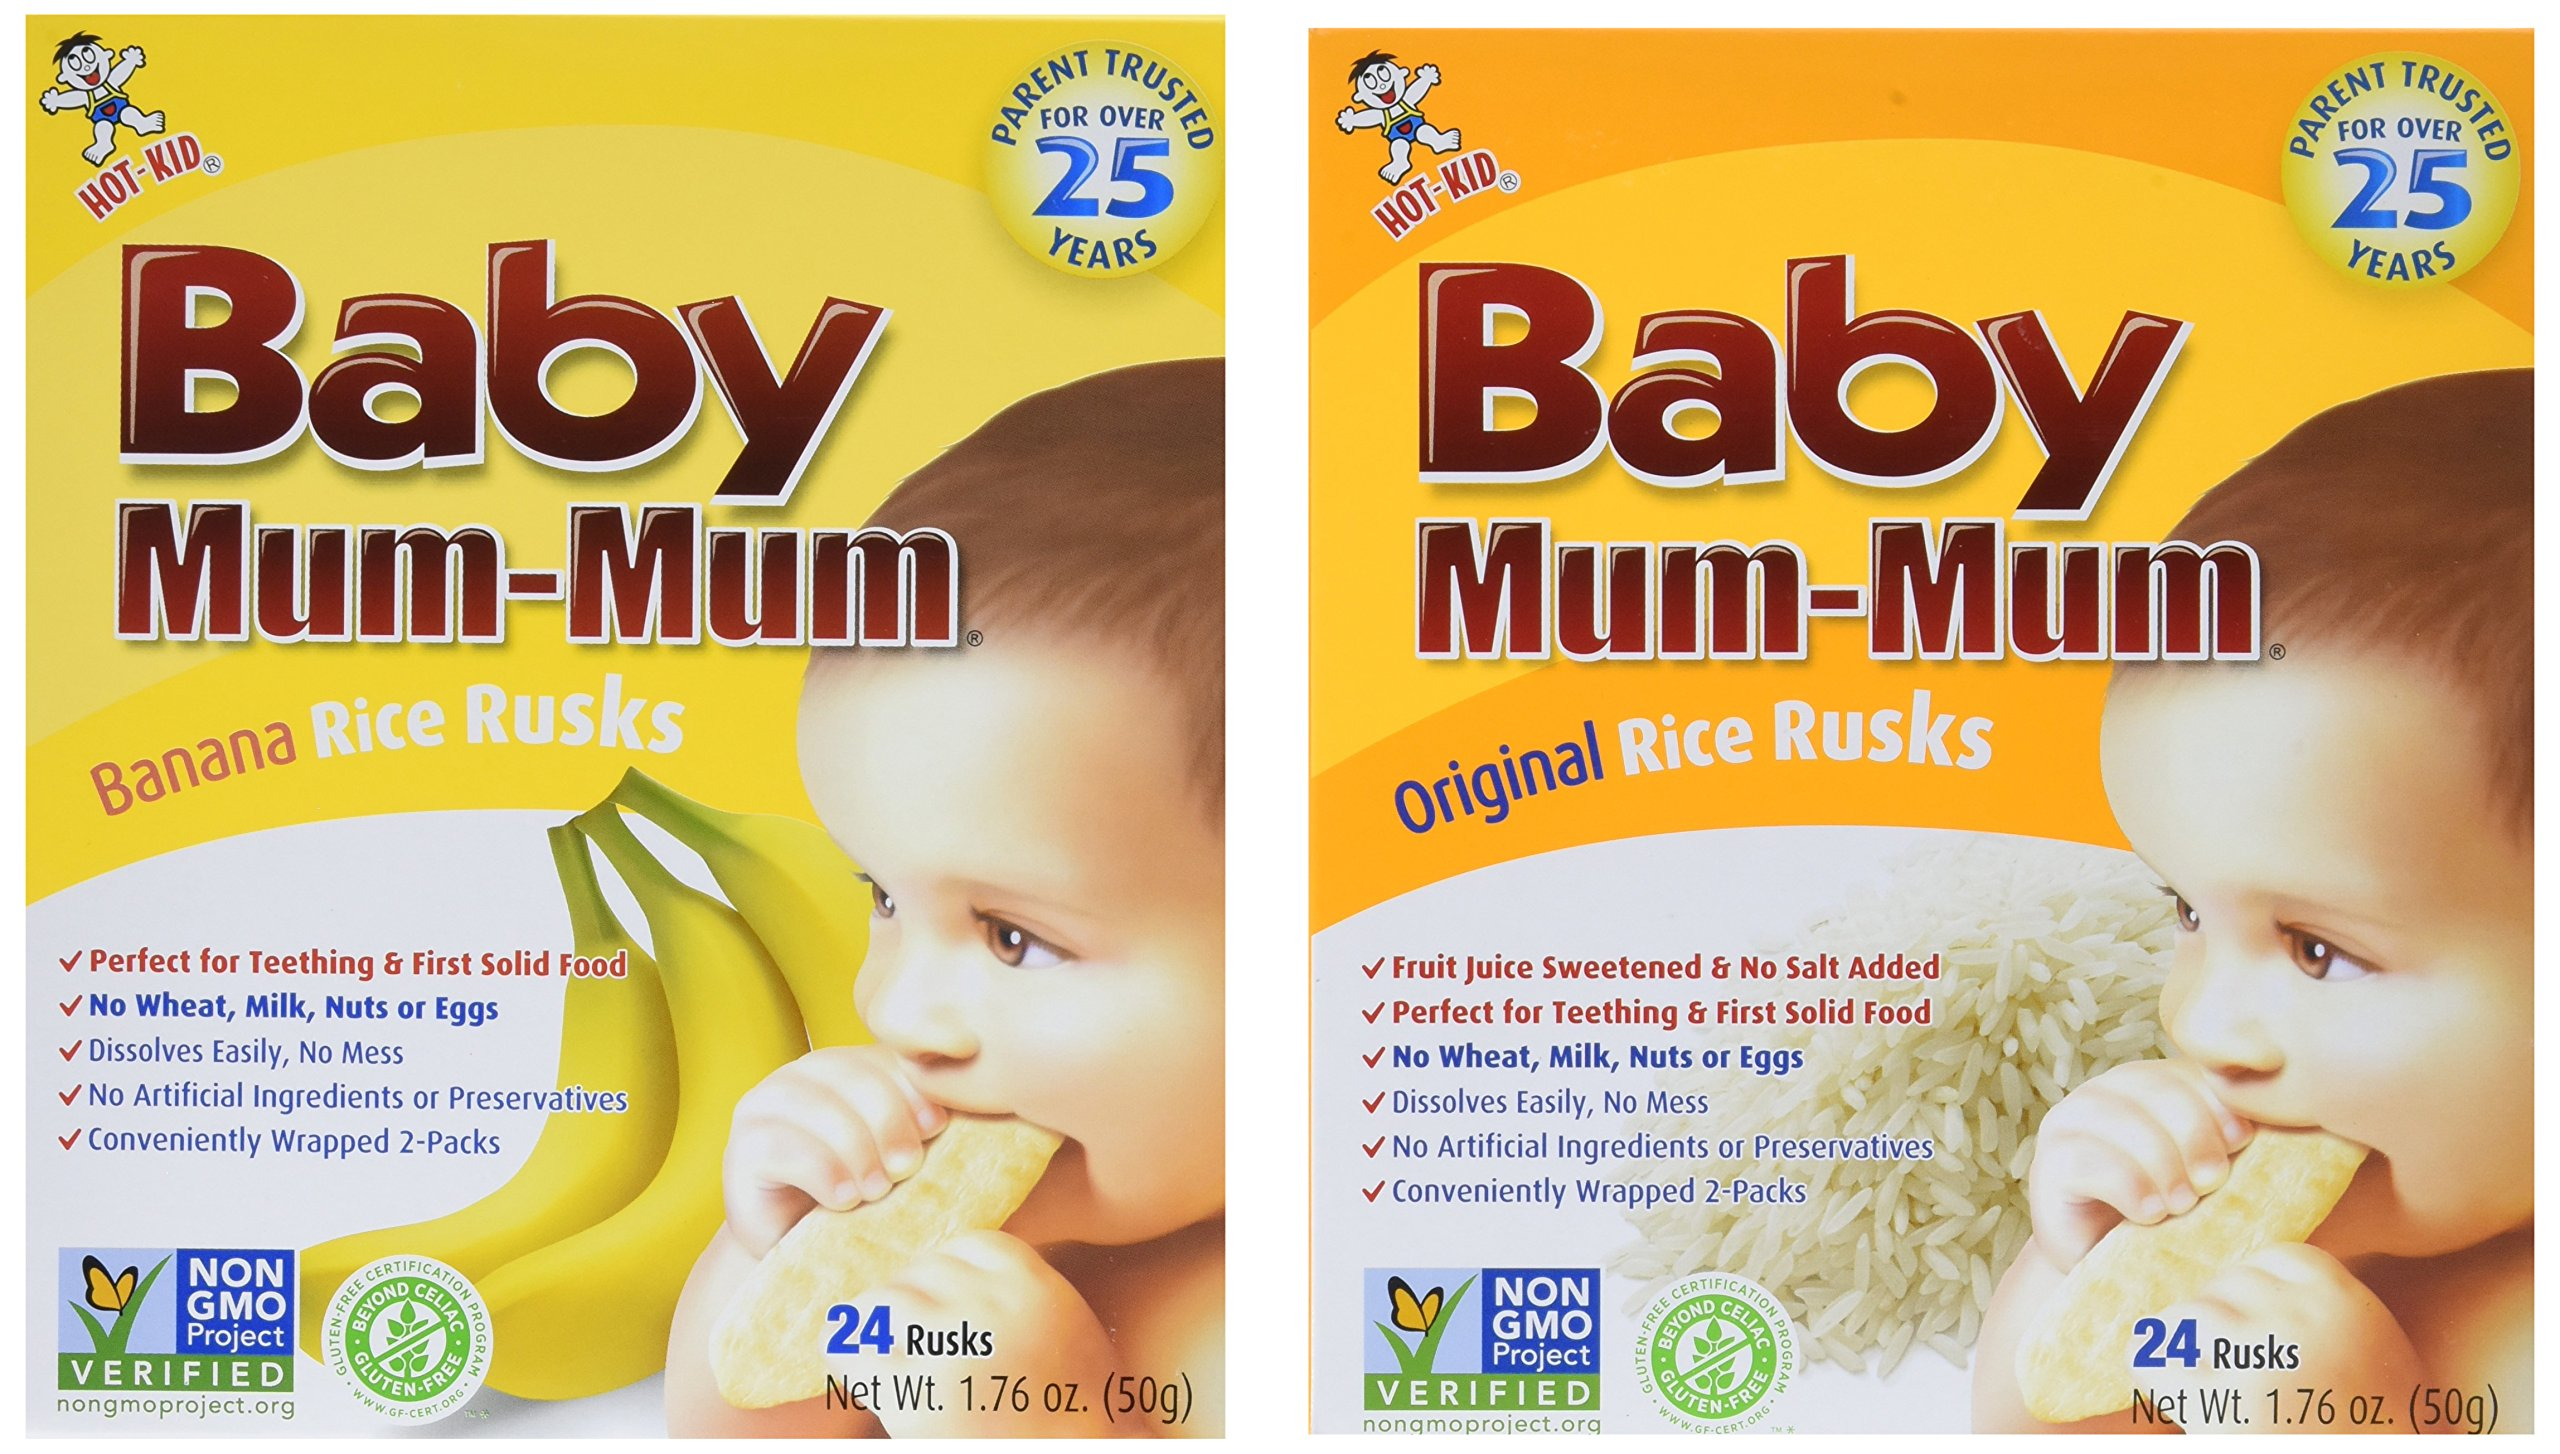 Hot-Kid Baby Mum-Mum Rice Rusks, 2 Flavor Variety Pack, 24 Pieces (Pack of 4) 2 Each: Banana, Original Gluten Free, Allergen Free, Non-GMO, Rice Teether Cookie for Teething Infants by Hot Kid